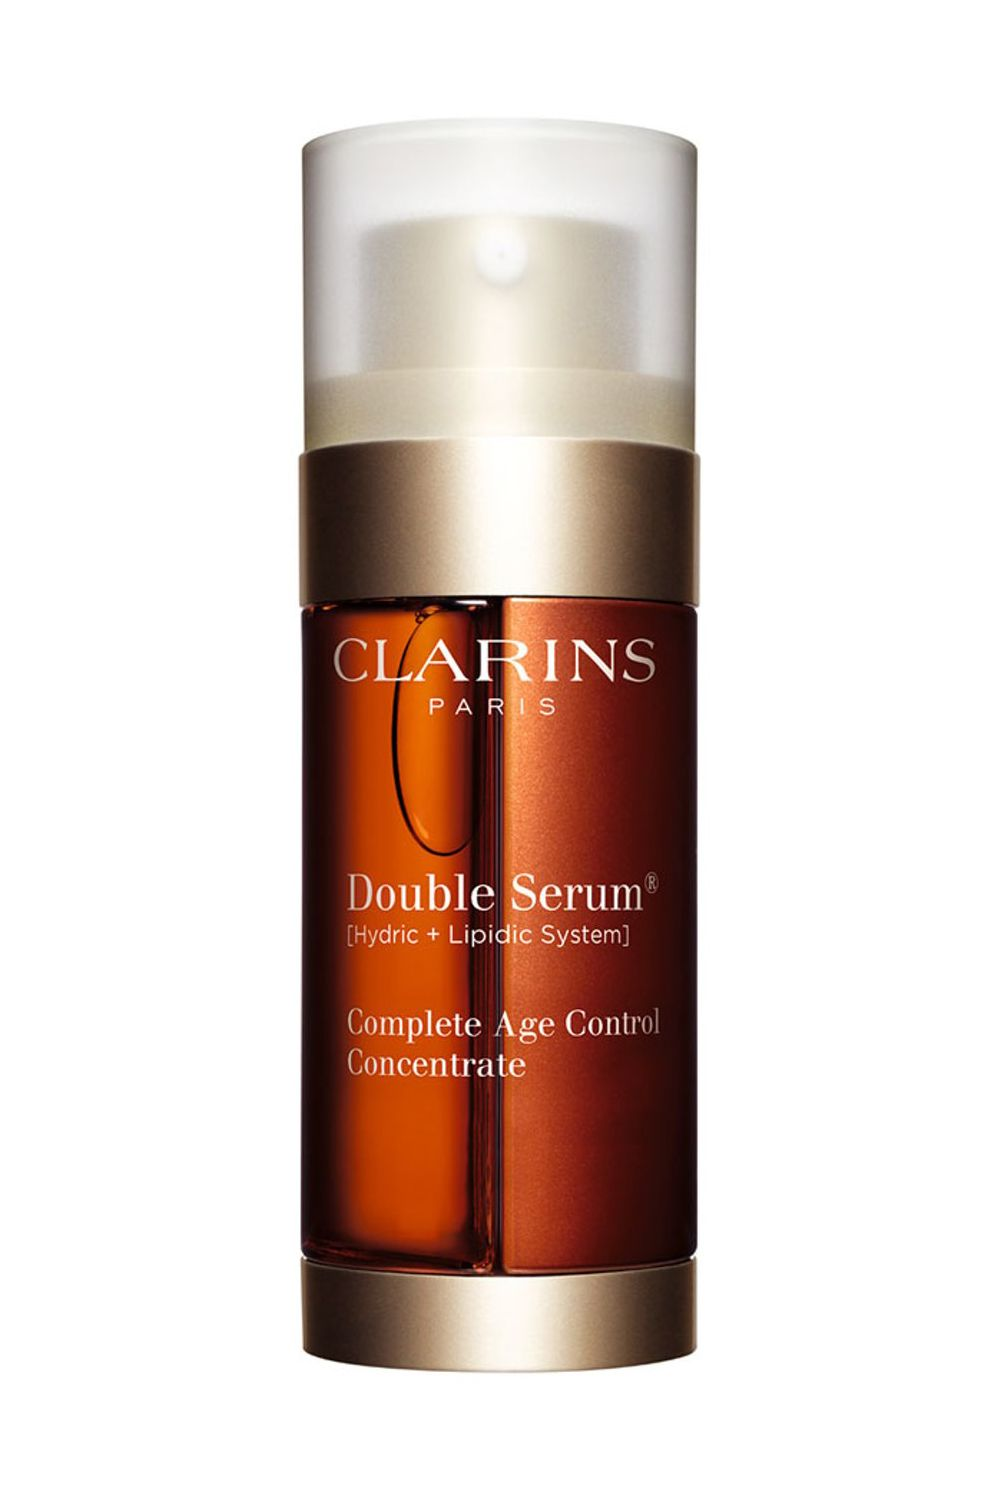 """<p>TWENTY plant extracts! For keeping you young-looking forever even though you've been having a midlife crisis since age 14.</p><p>$119, <a href=""""http://shop.nordstrom.com/s/clarins-double-serum-complete-age-control-concentrate/3431180"""" target=""""_blank"""" data-tracking-id=""""recirc-text-link"""">shop.nordstrom.com</a>.</p>"""